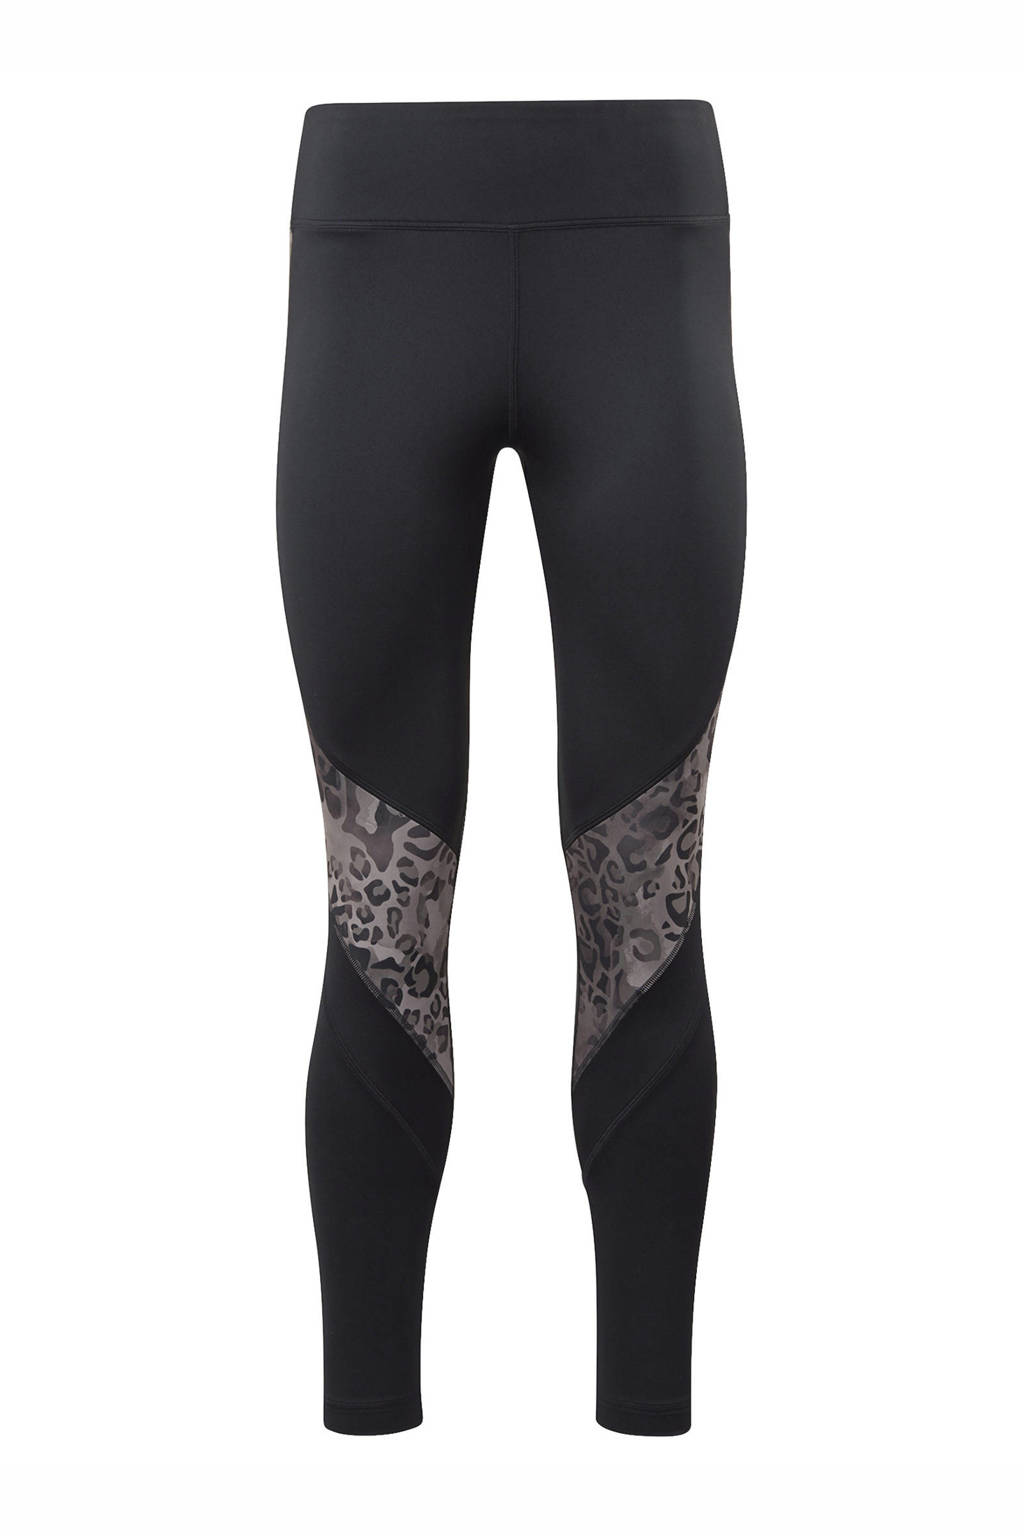 Reebok Training sportlegging zwart/zand, Zwart/zand